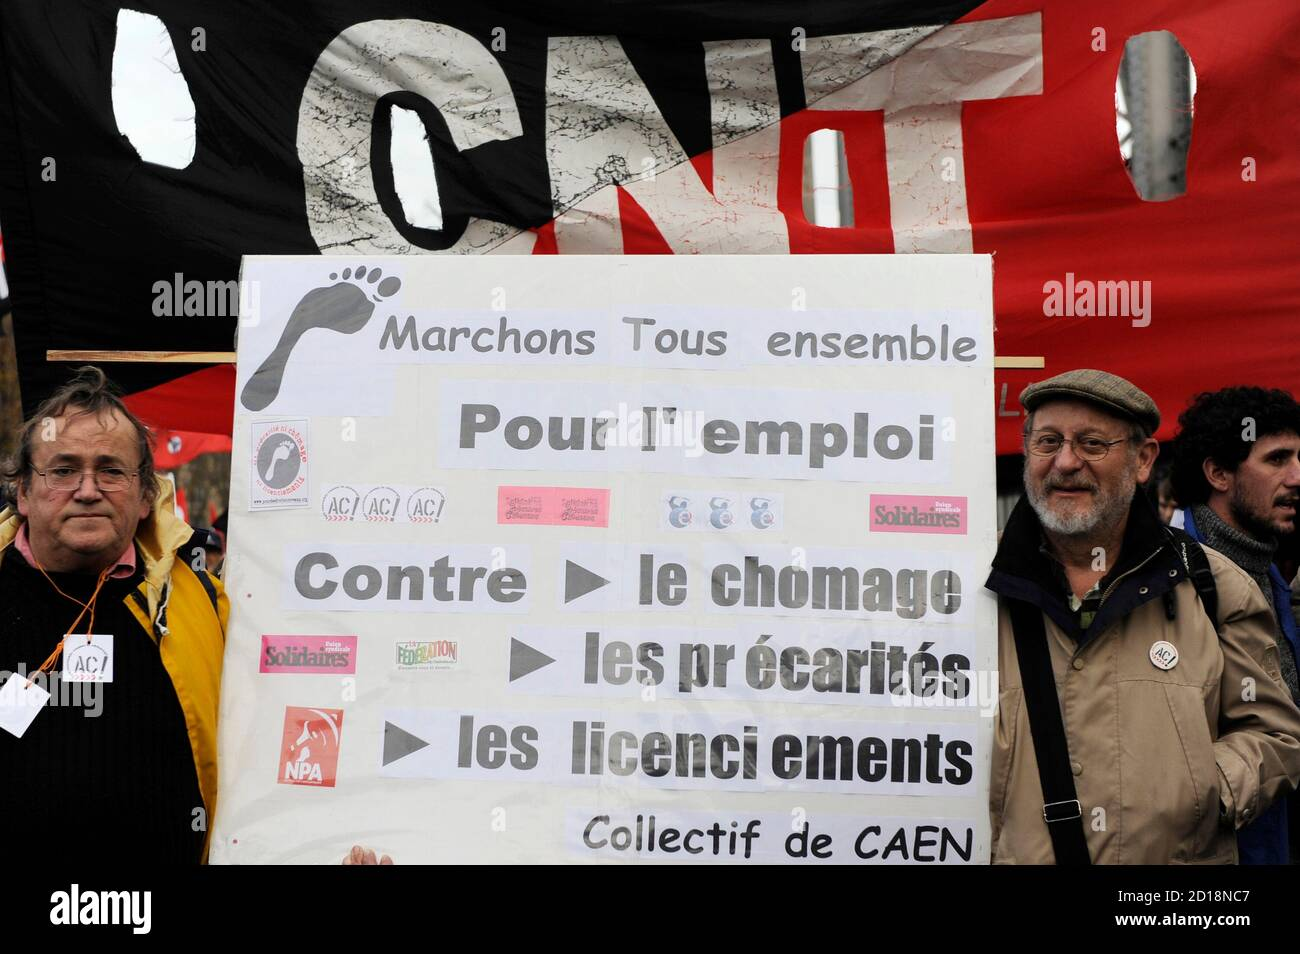 """Men carrying a sign which reads: """"Let's walk together for employment: against unemployment, job insecurity and layoffs."""", attend a national demonstration to protest against unemployment in Paris December 5, 2009. REUTERS/Gonzalo Fuentes (FRANCE POLITICS CONFLICT EMPLOYMENT BUSINESS) Stock Photo"""